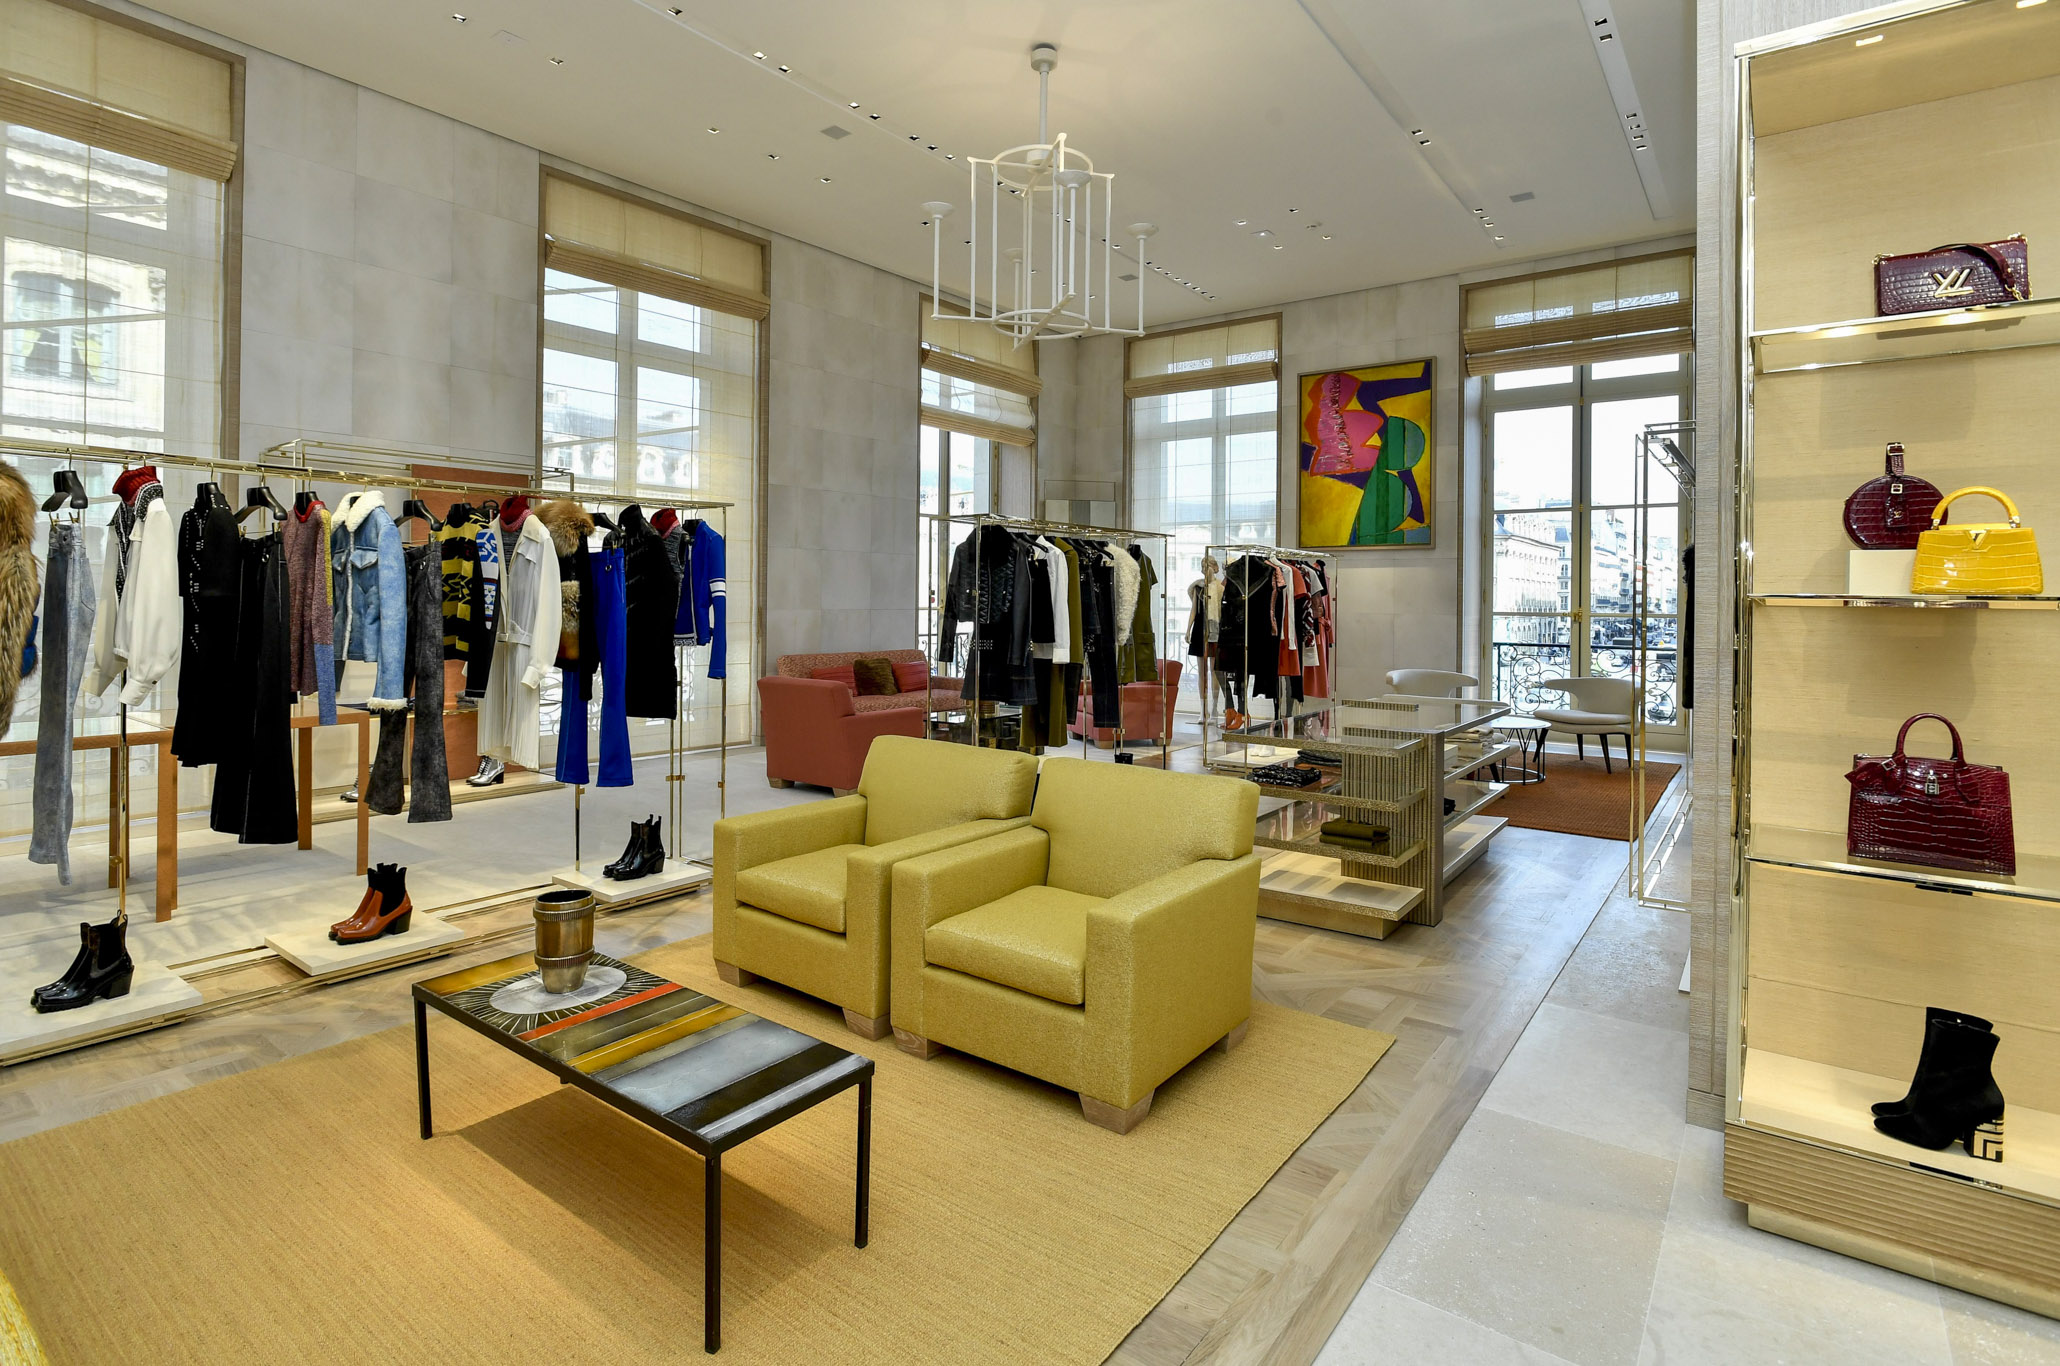 The women's department in the LV flagship on Place Vendôme